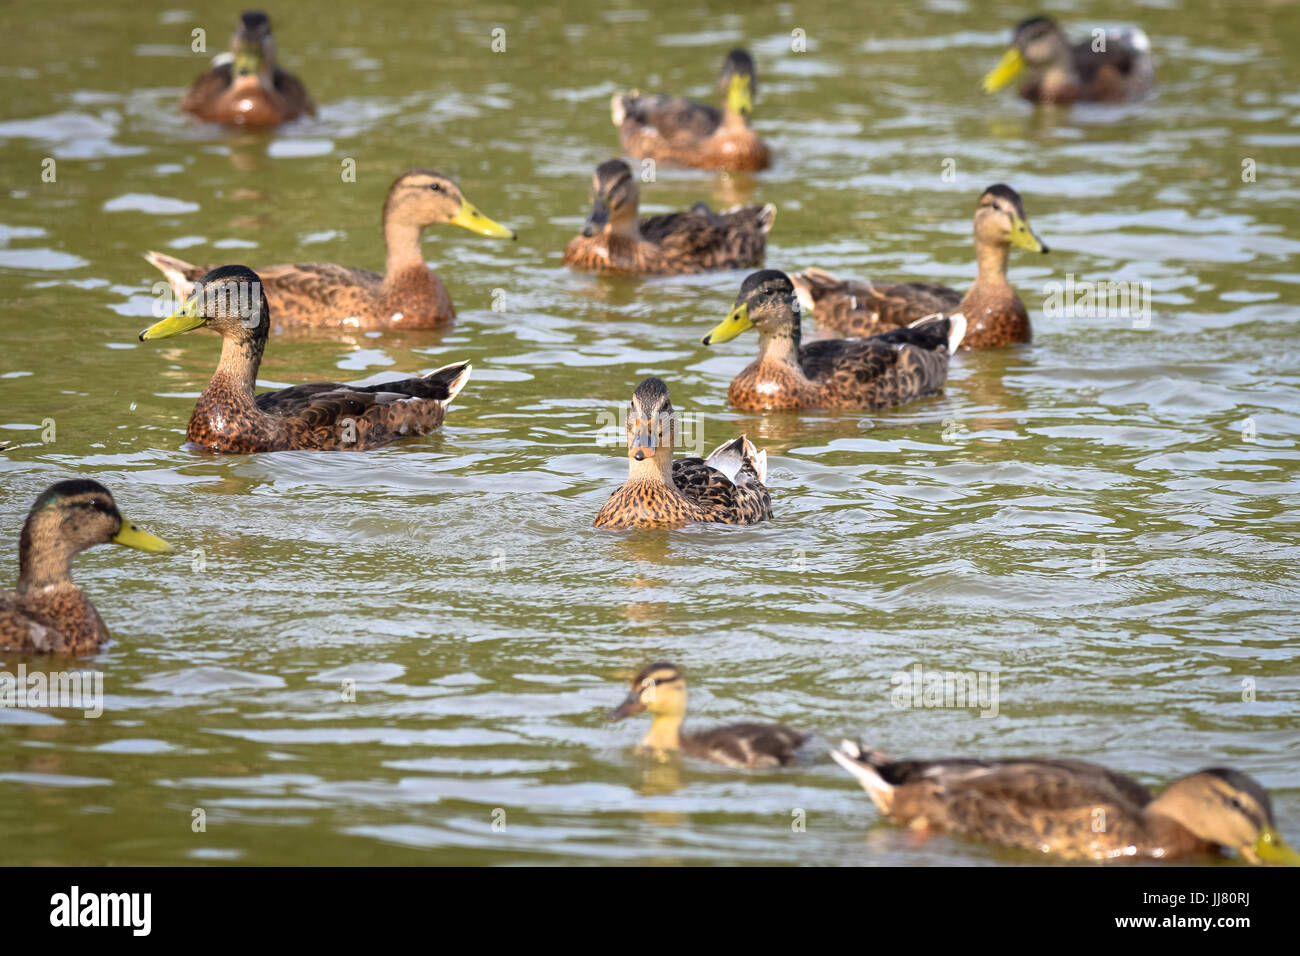 A group or sord of mallard ducks with both male drake and female ducks swimming in a still lake in the early summer - Stock Image